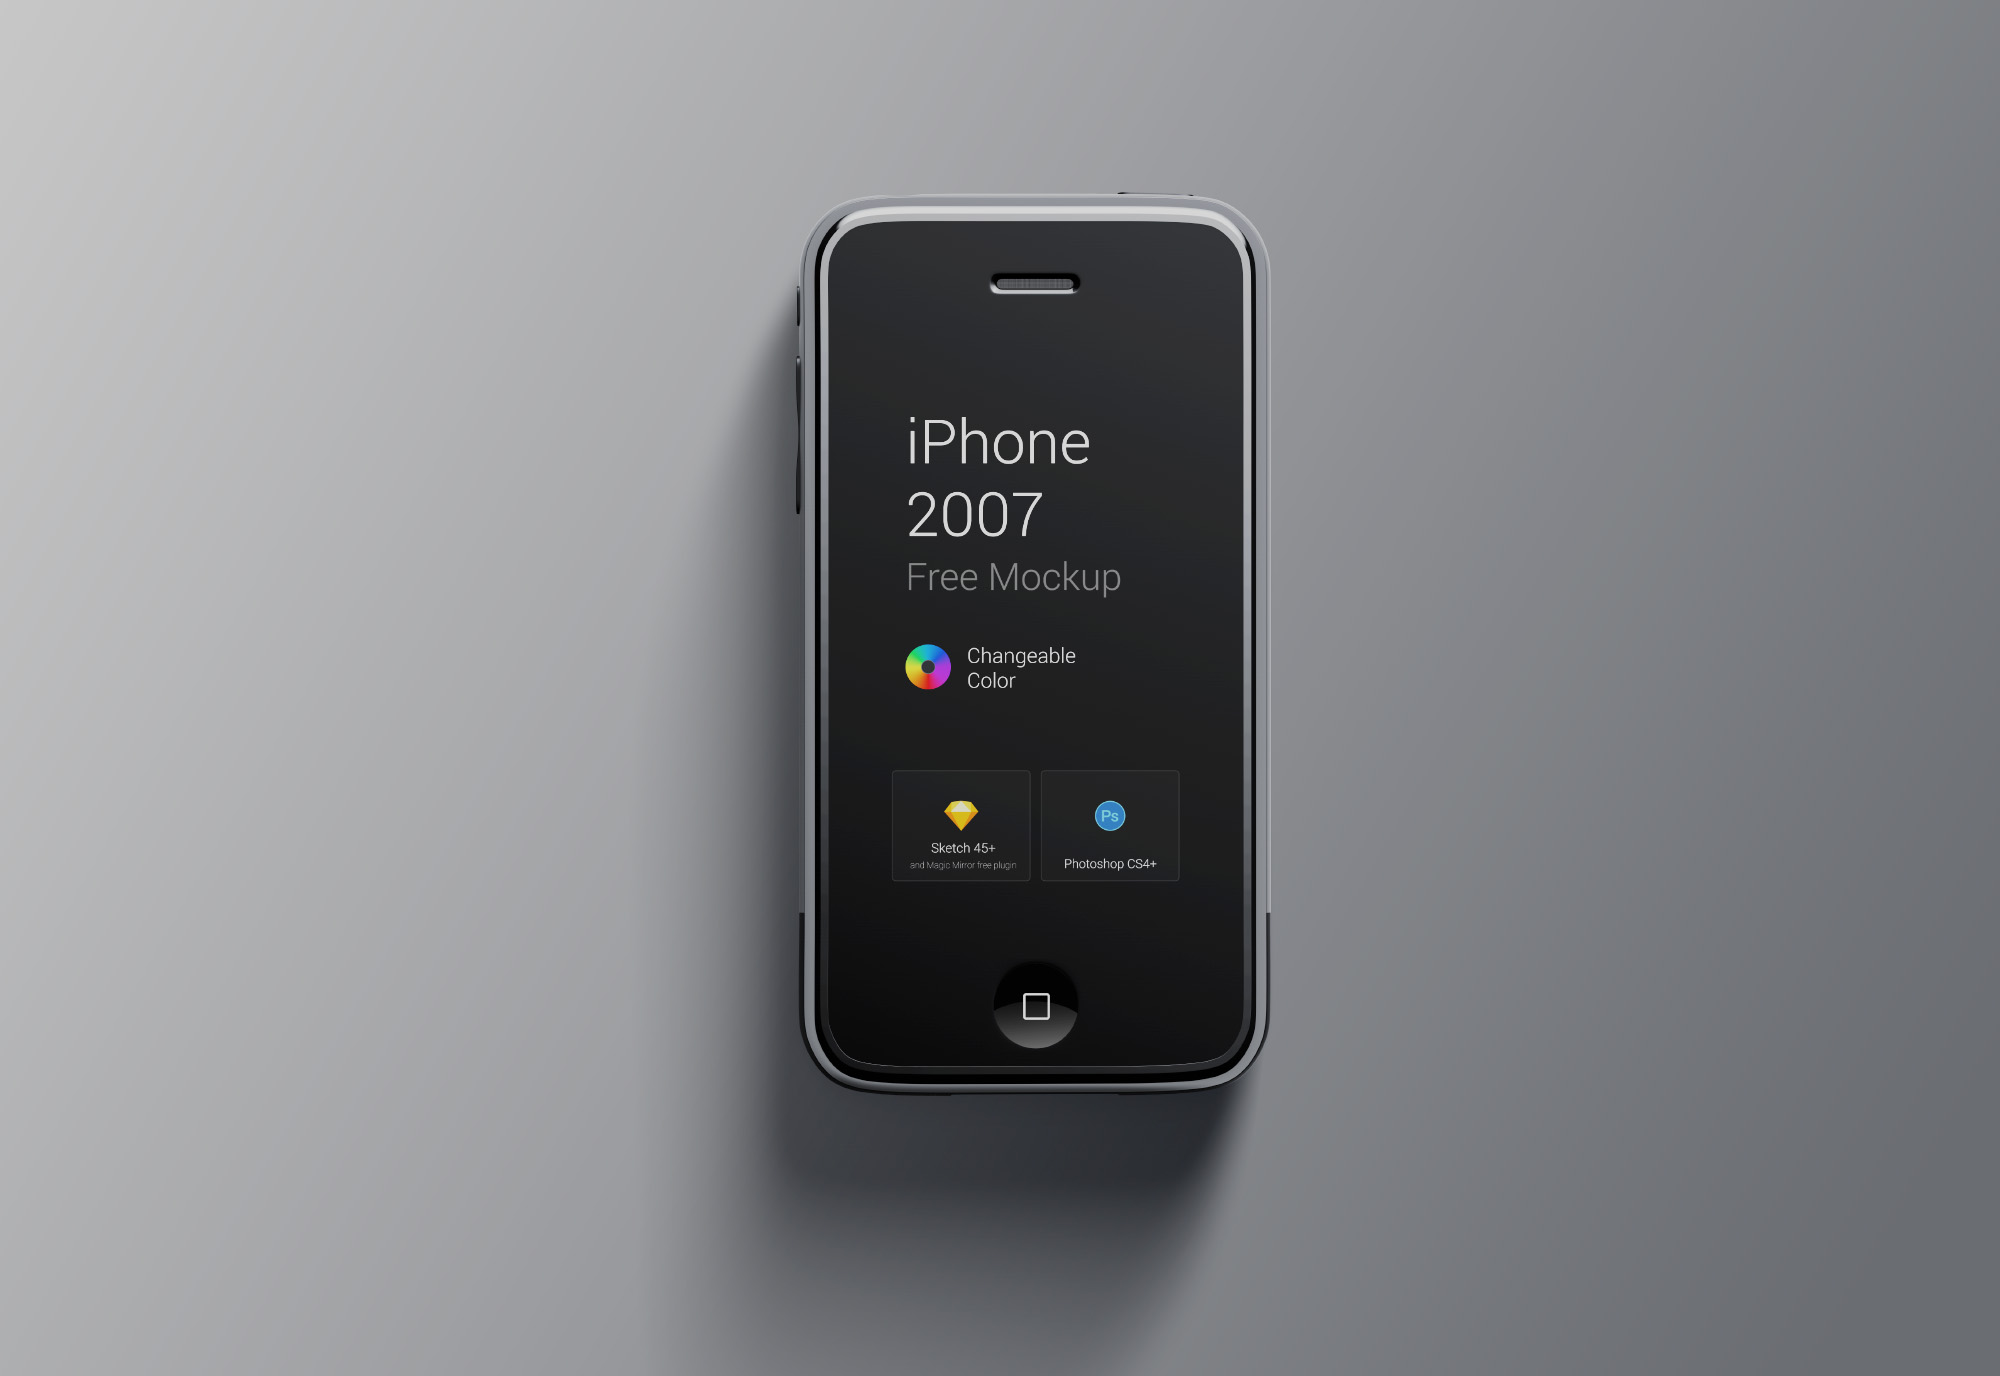 Asli warna iPhone 2007 Mockup